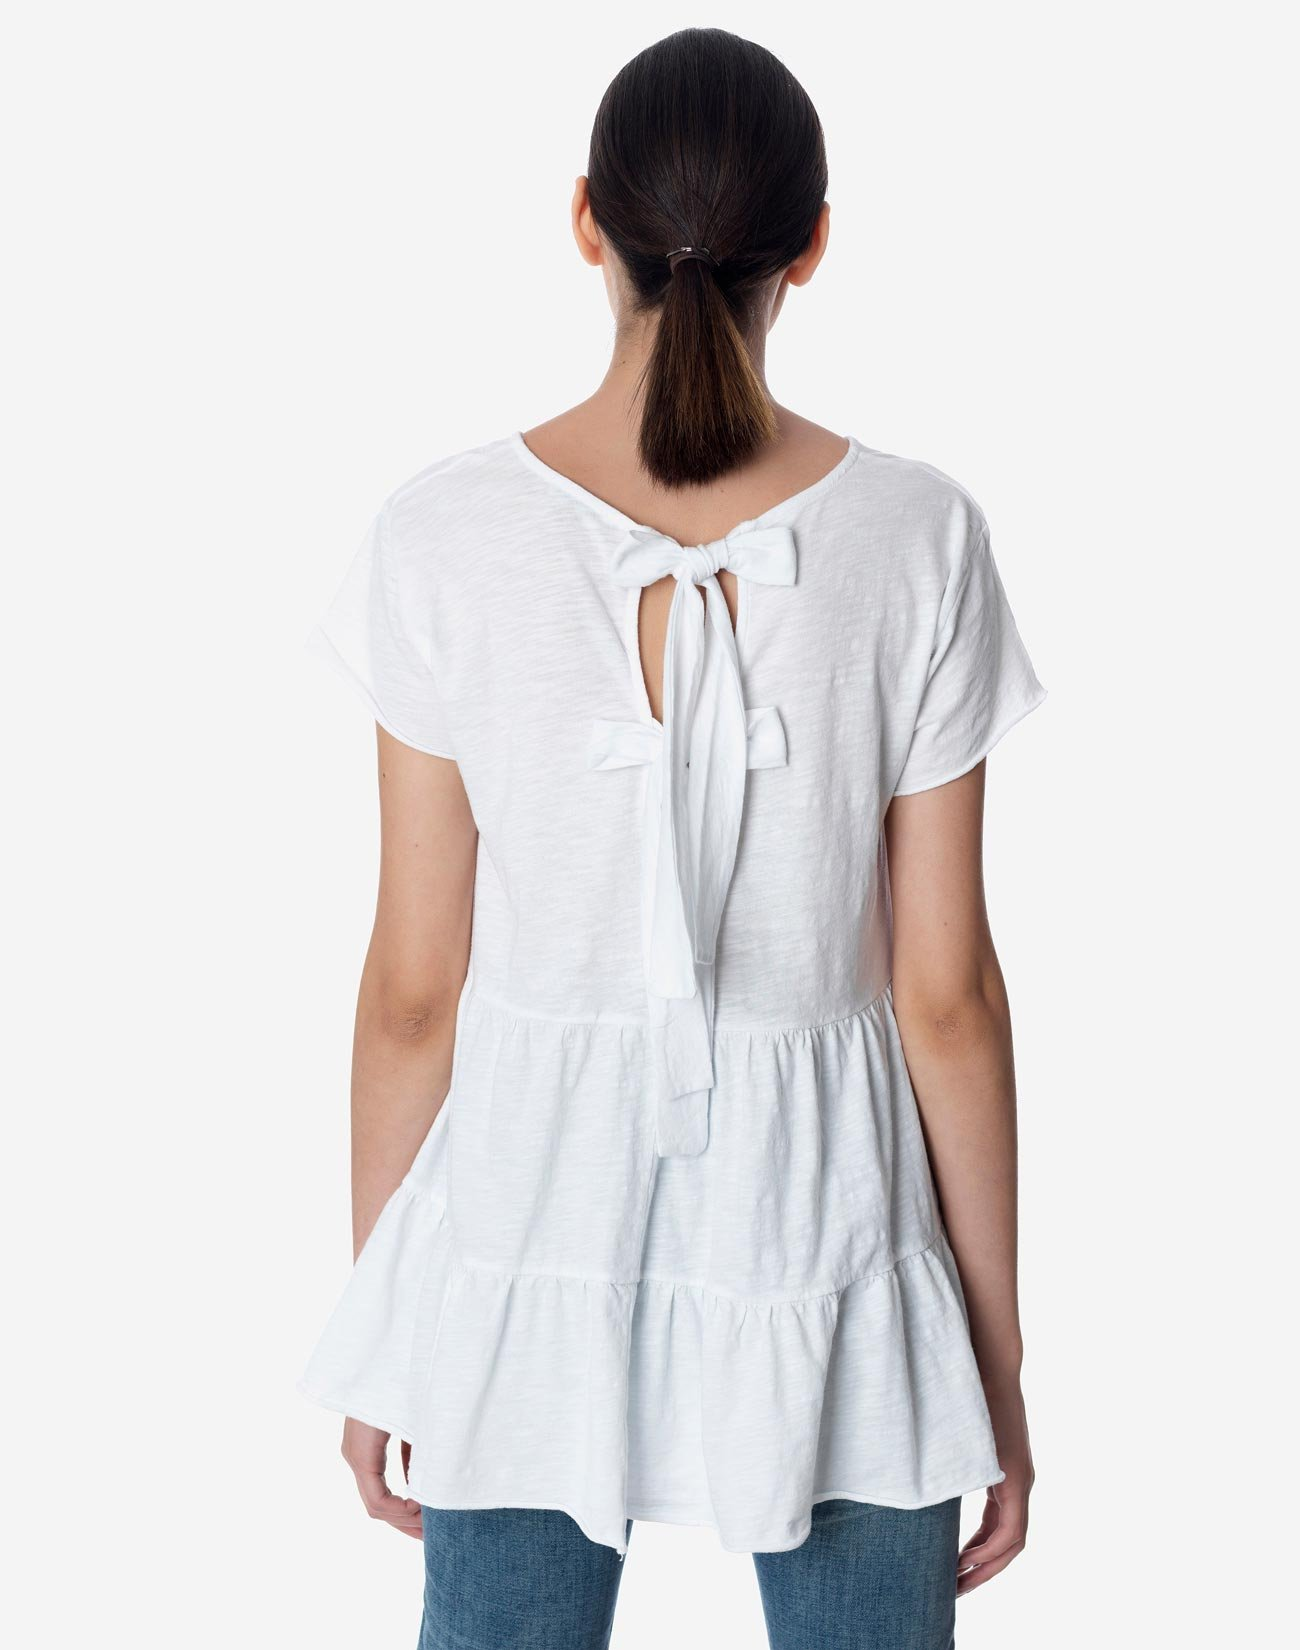 Bow back top